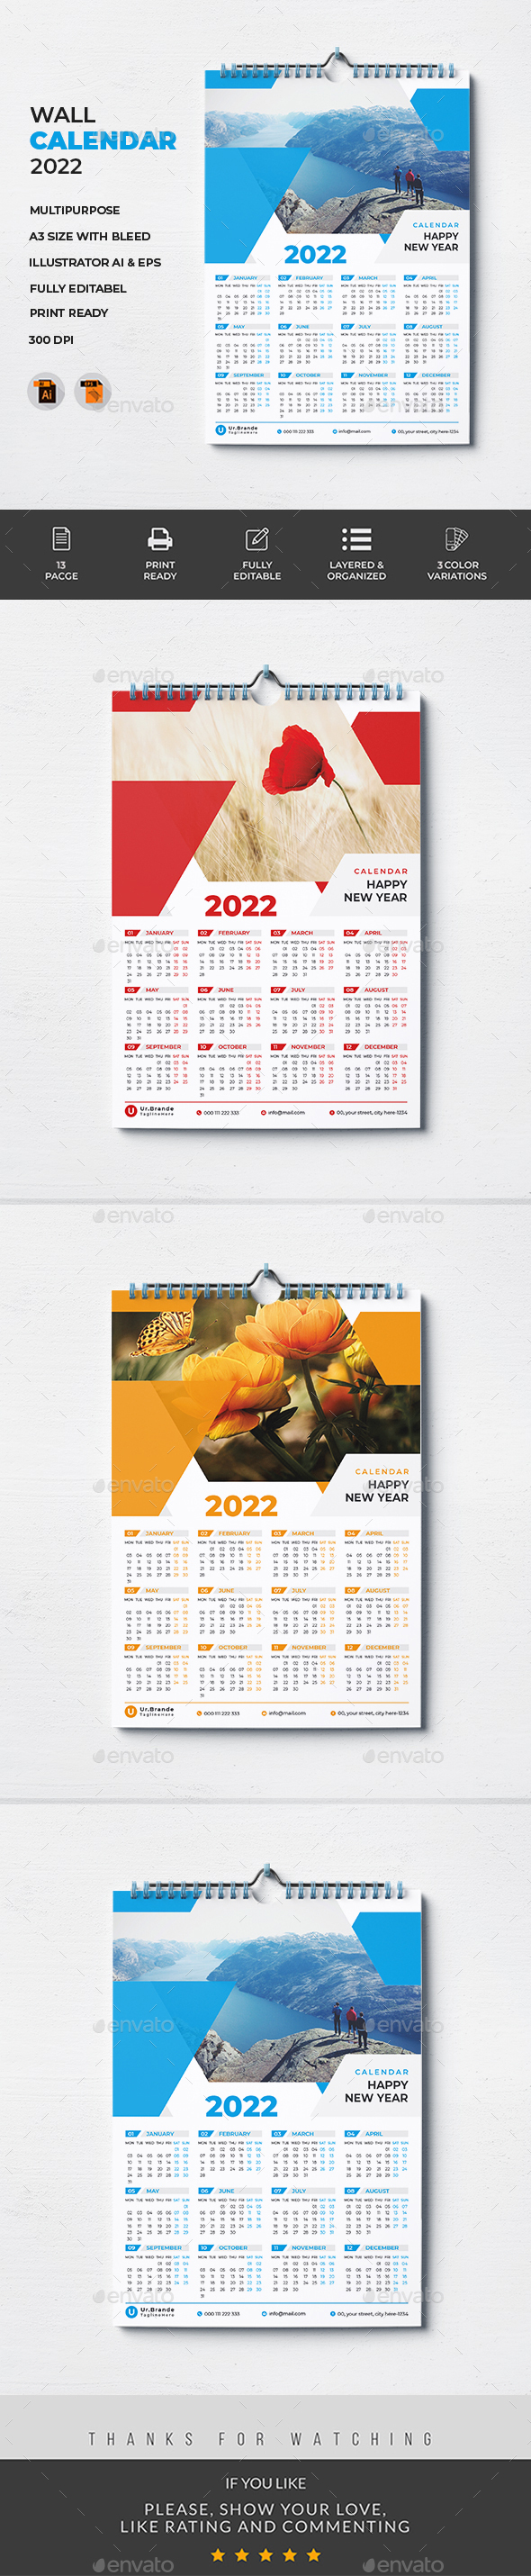 One Page Wall Calendar 2022